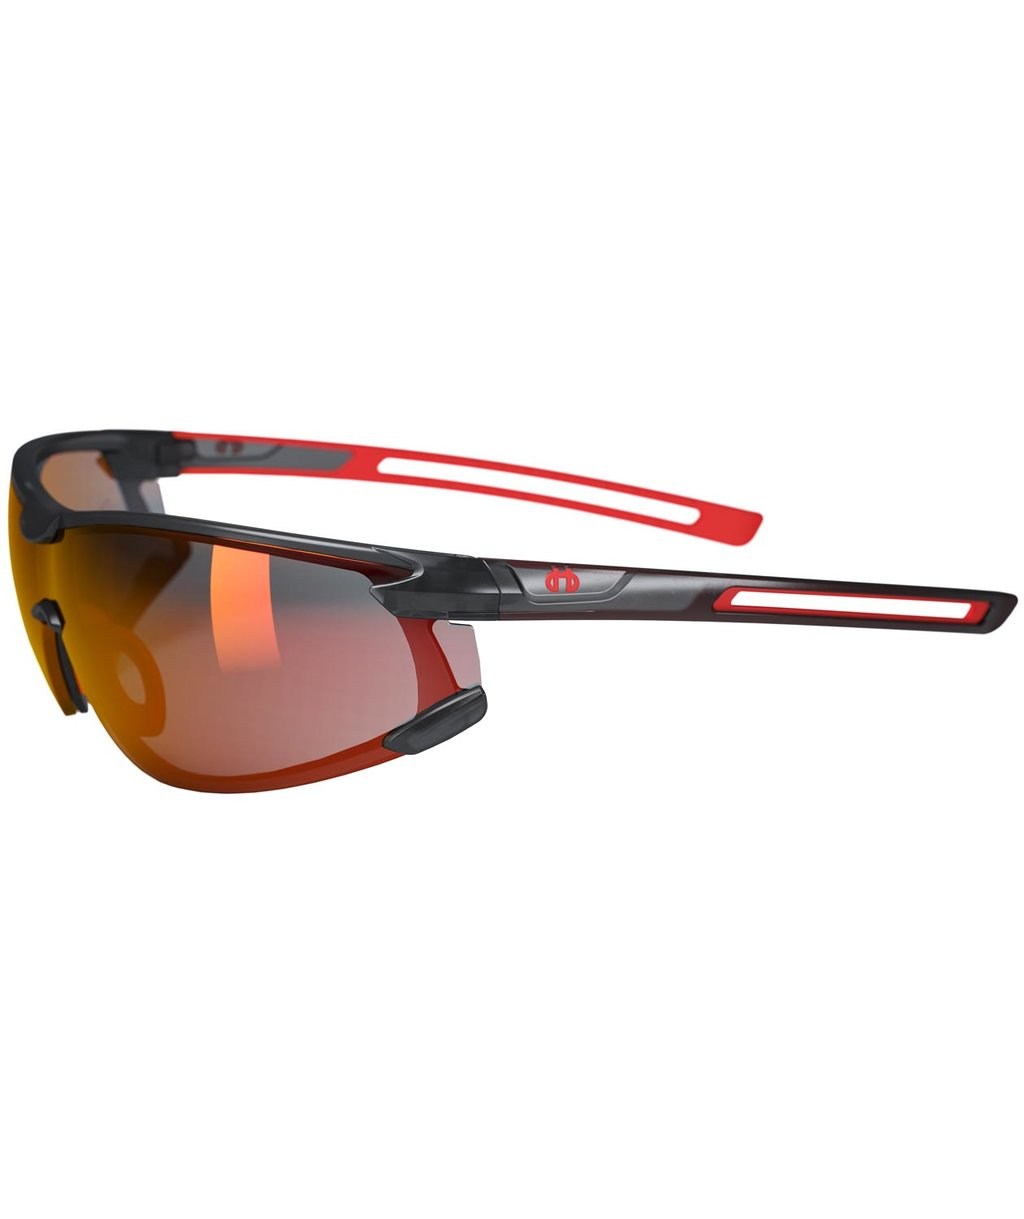 Hellberg Krypton AF/AS safety glasses, Red